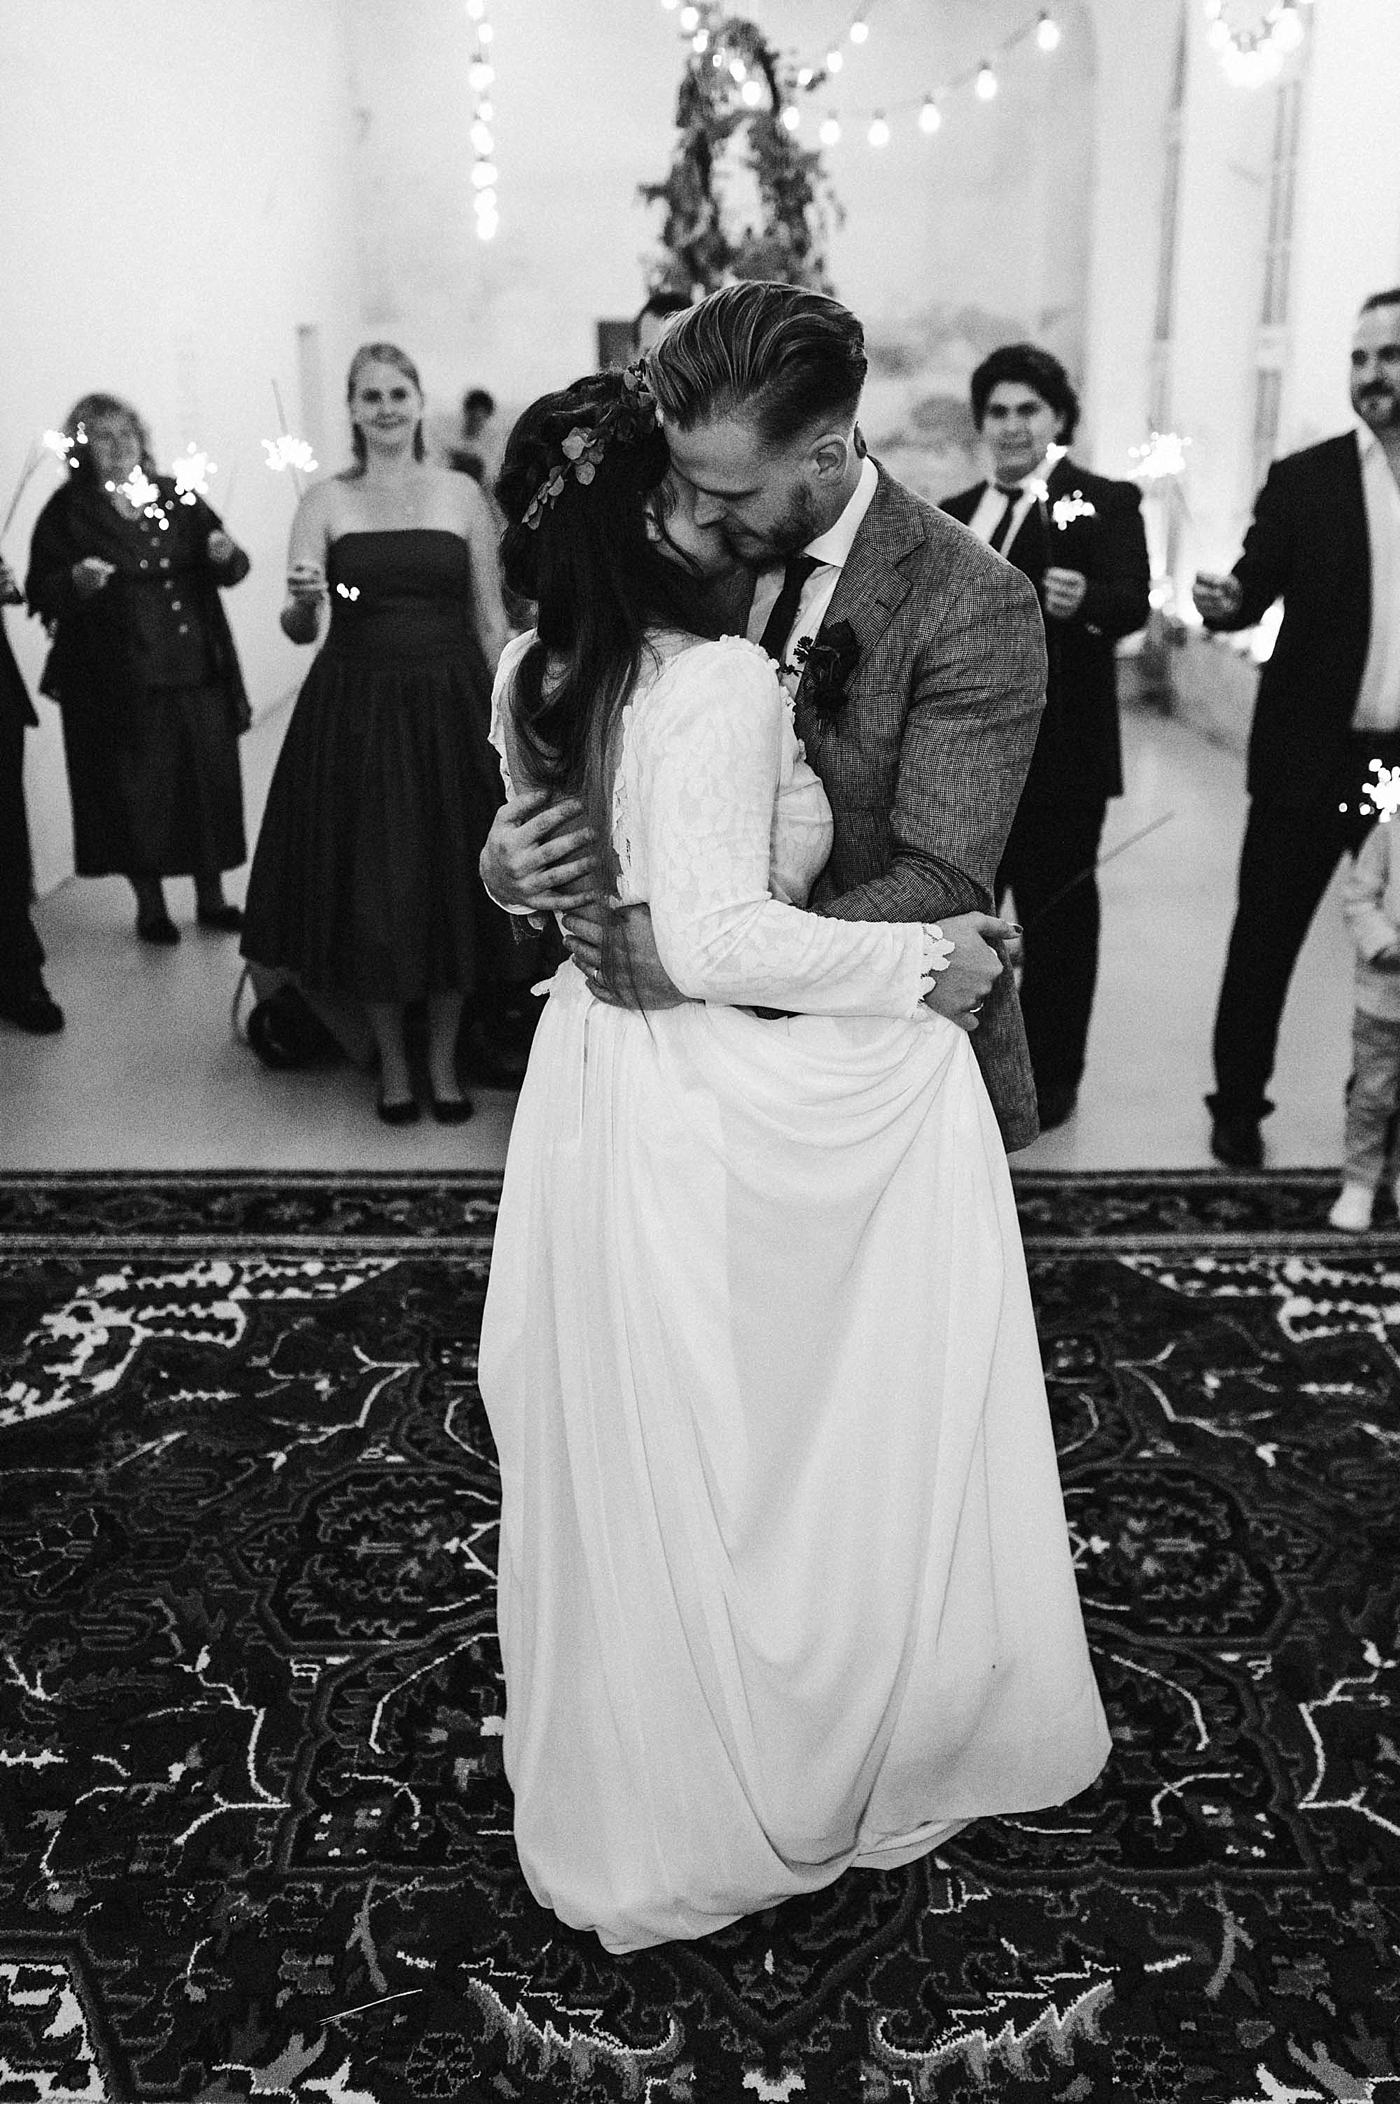 urban-elopement-wedding-266 Merve & Nils emotionales Elopement - Wedding Wesel & Schottlandurban elopement wedding 266 1